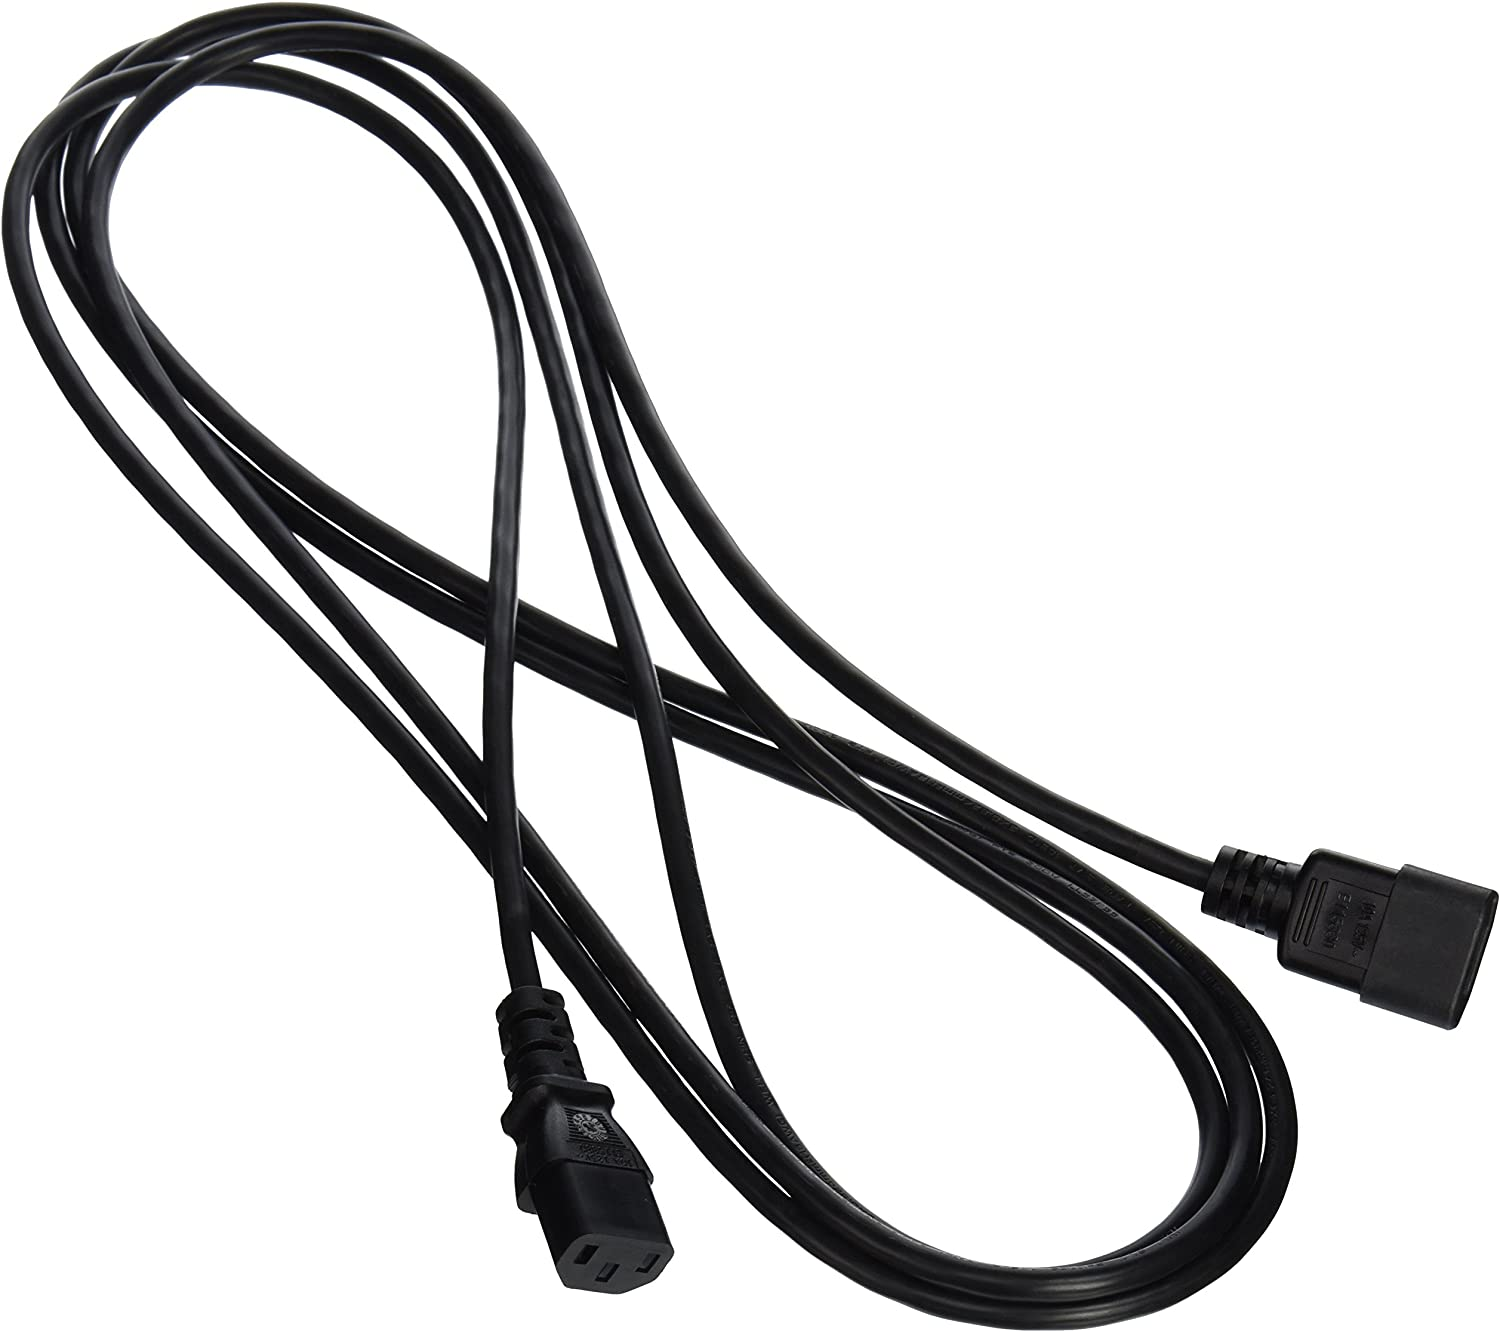 C2G/Cables to Go 53407 12ft 18 AWG Computer Power Extension Cord (IEC320C14 to IEC320C13)